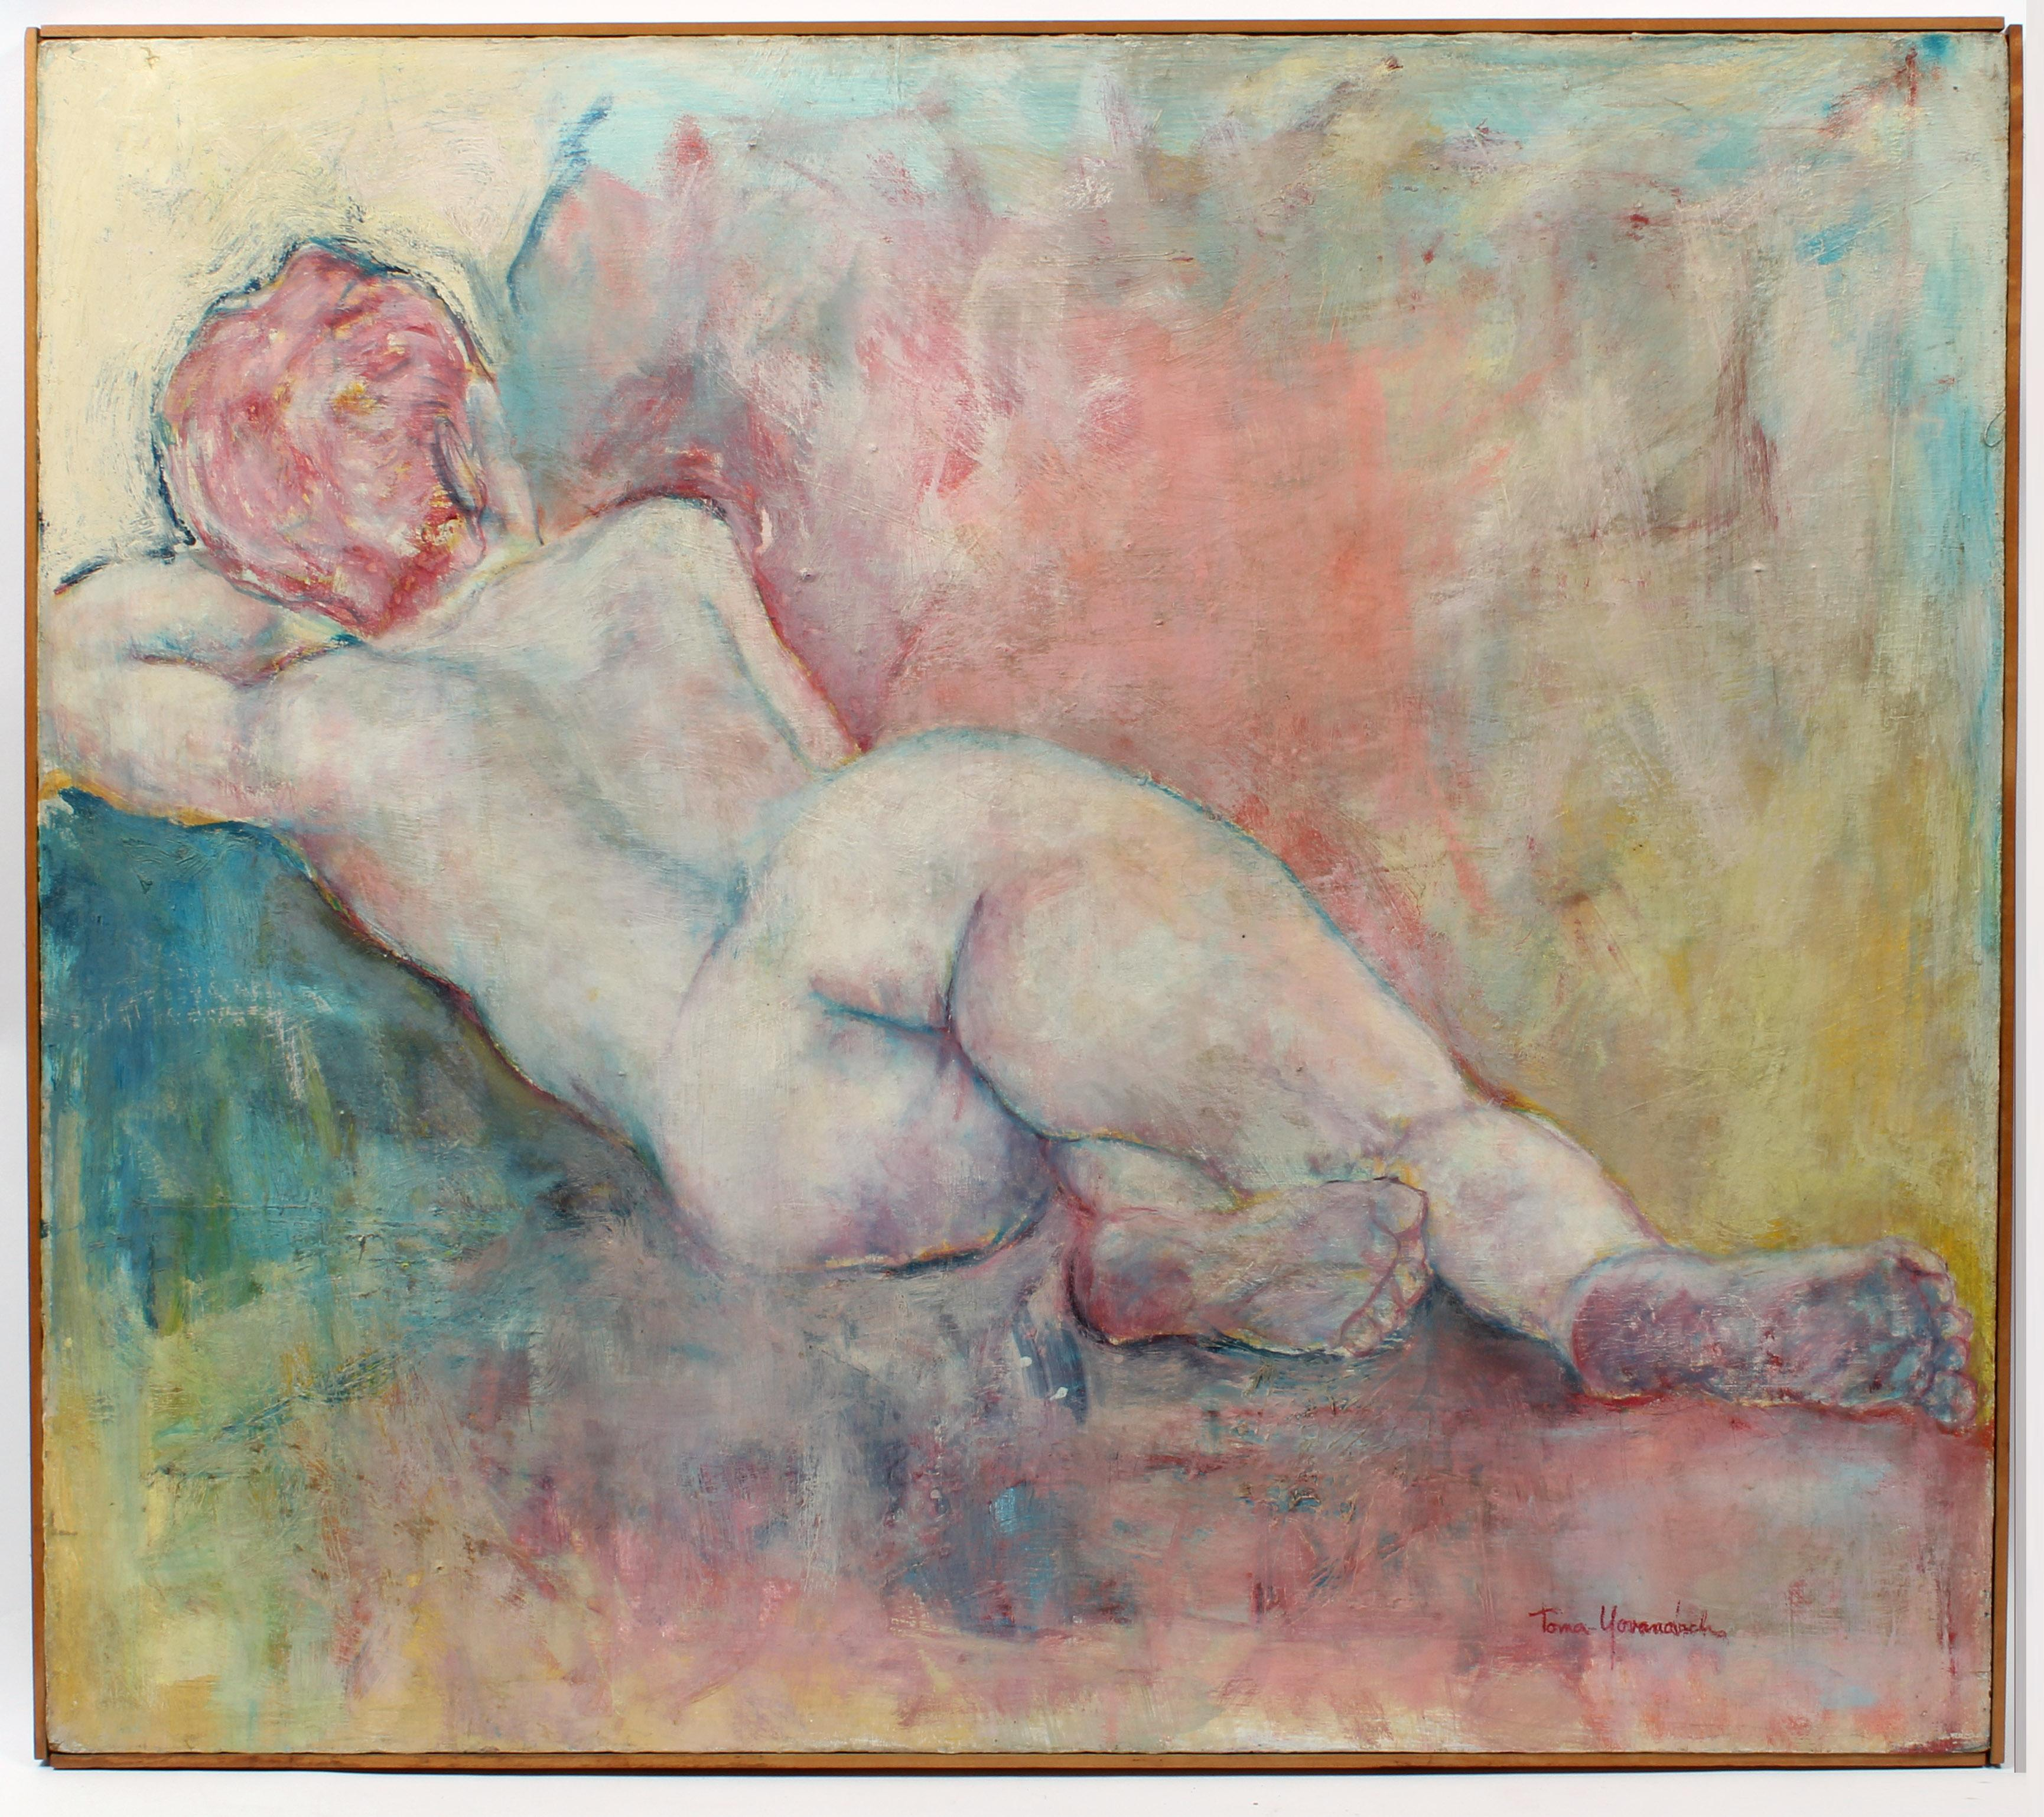 Mid Century Modern Oil Painting Abstract Expressionist Nude Pastel Pink Green